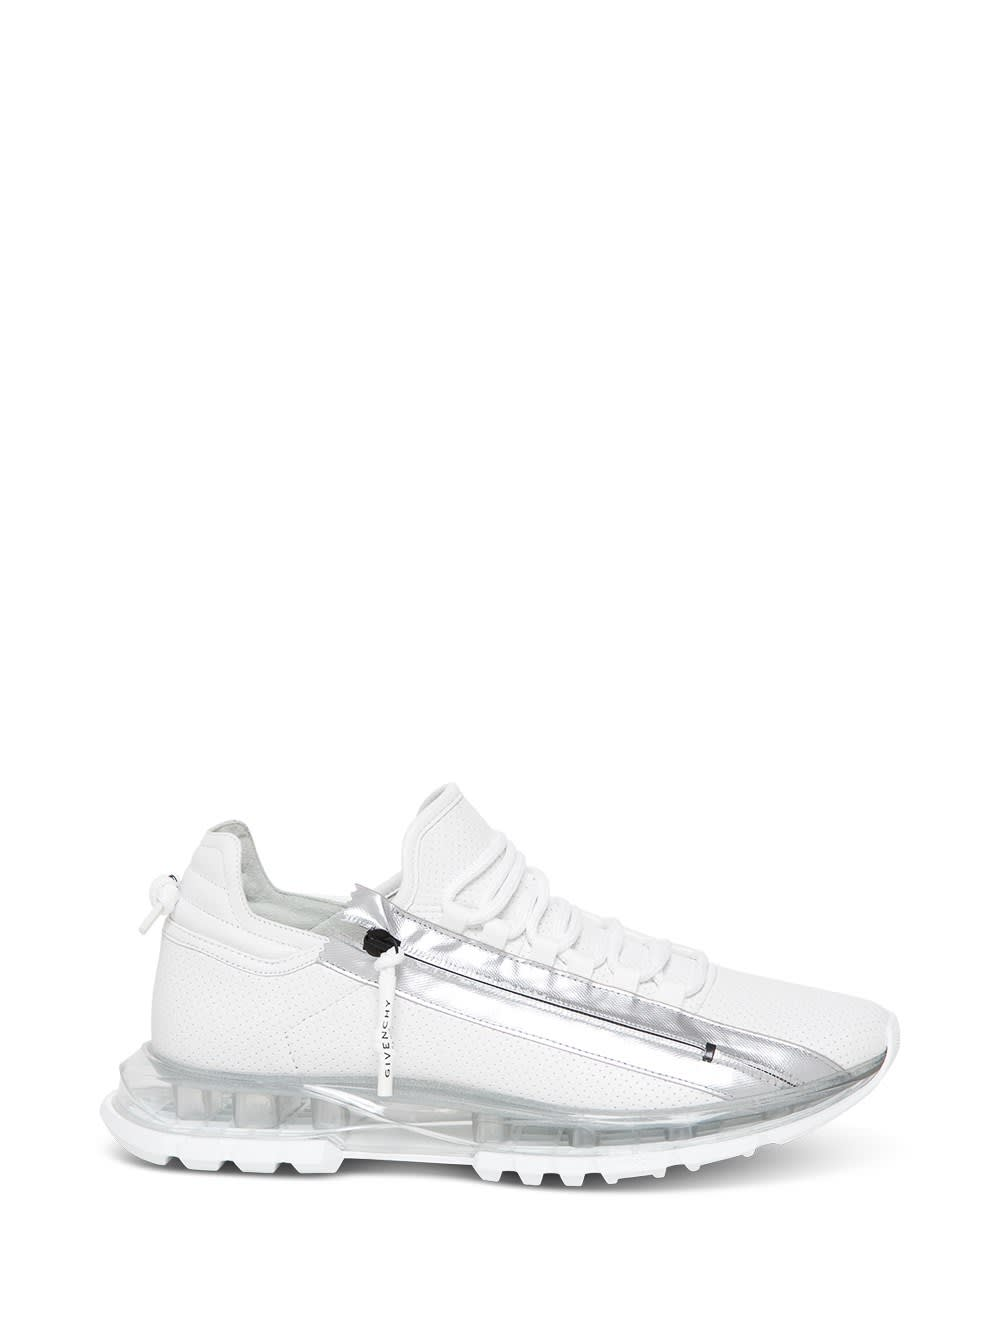 Givenchy SNEAKERS SPECTRE LEATHER PERFORATED TRANSPARENT SOLE